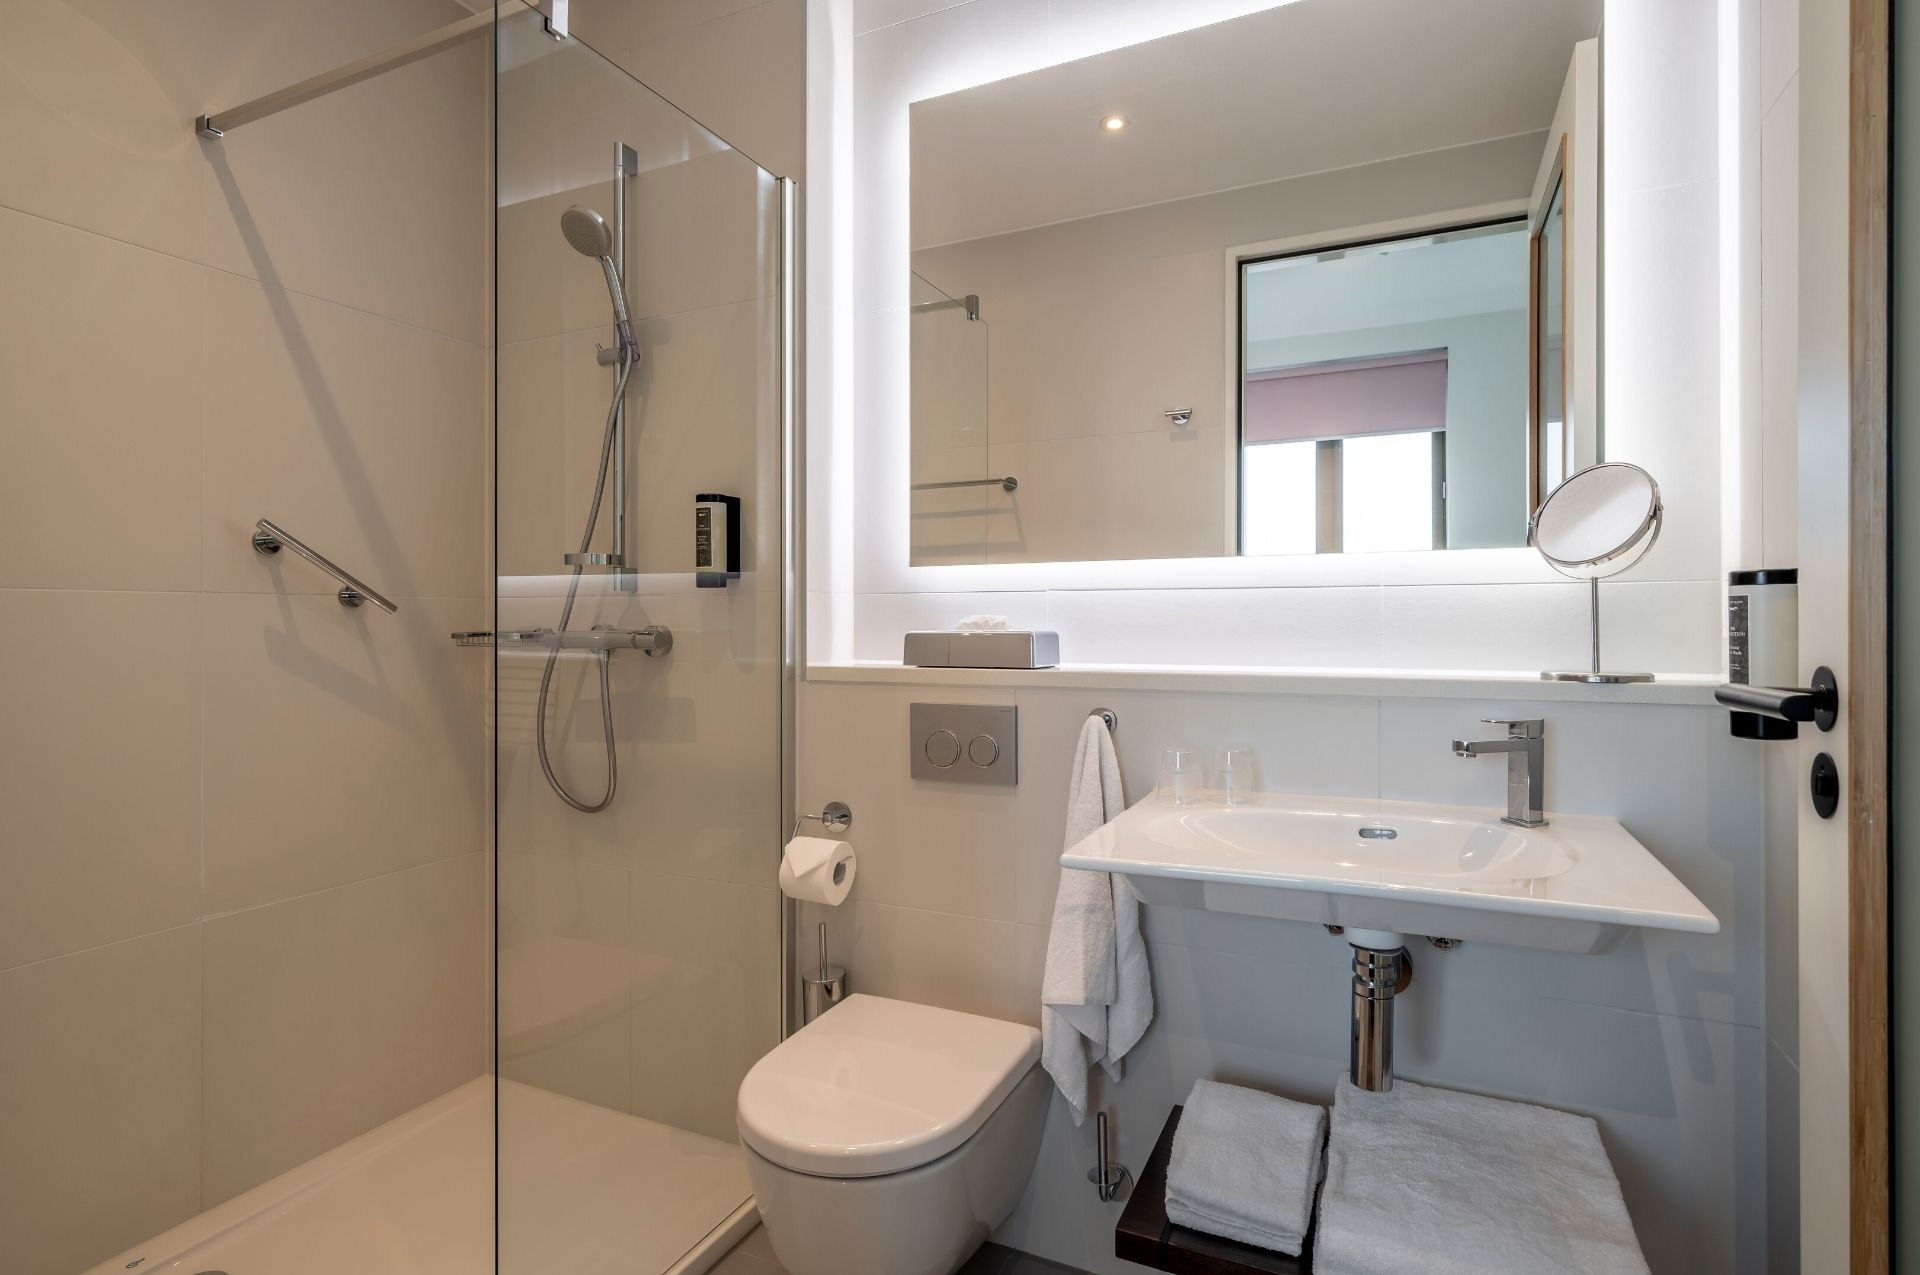 PREMIER SUITES PLUS Amsterdam One Bed Apartment Bathroom